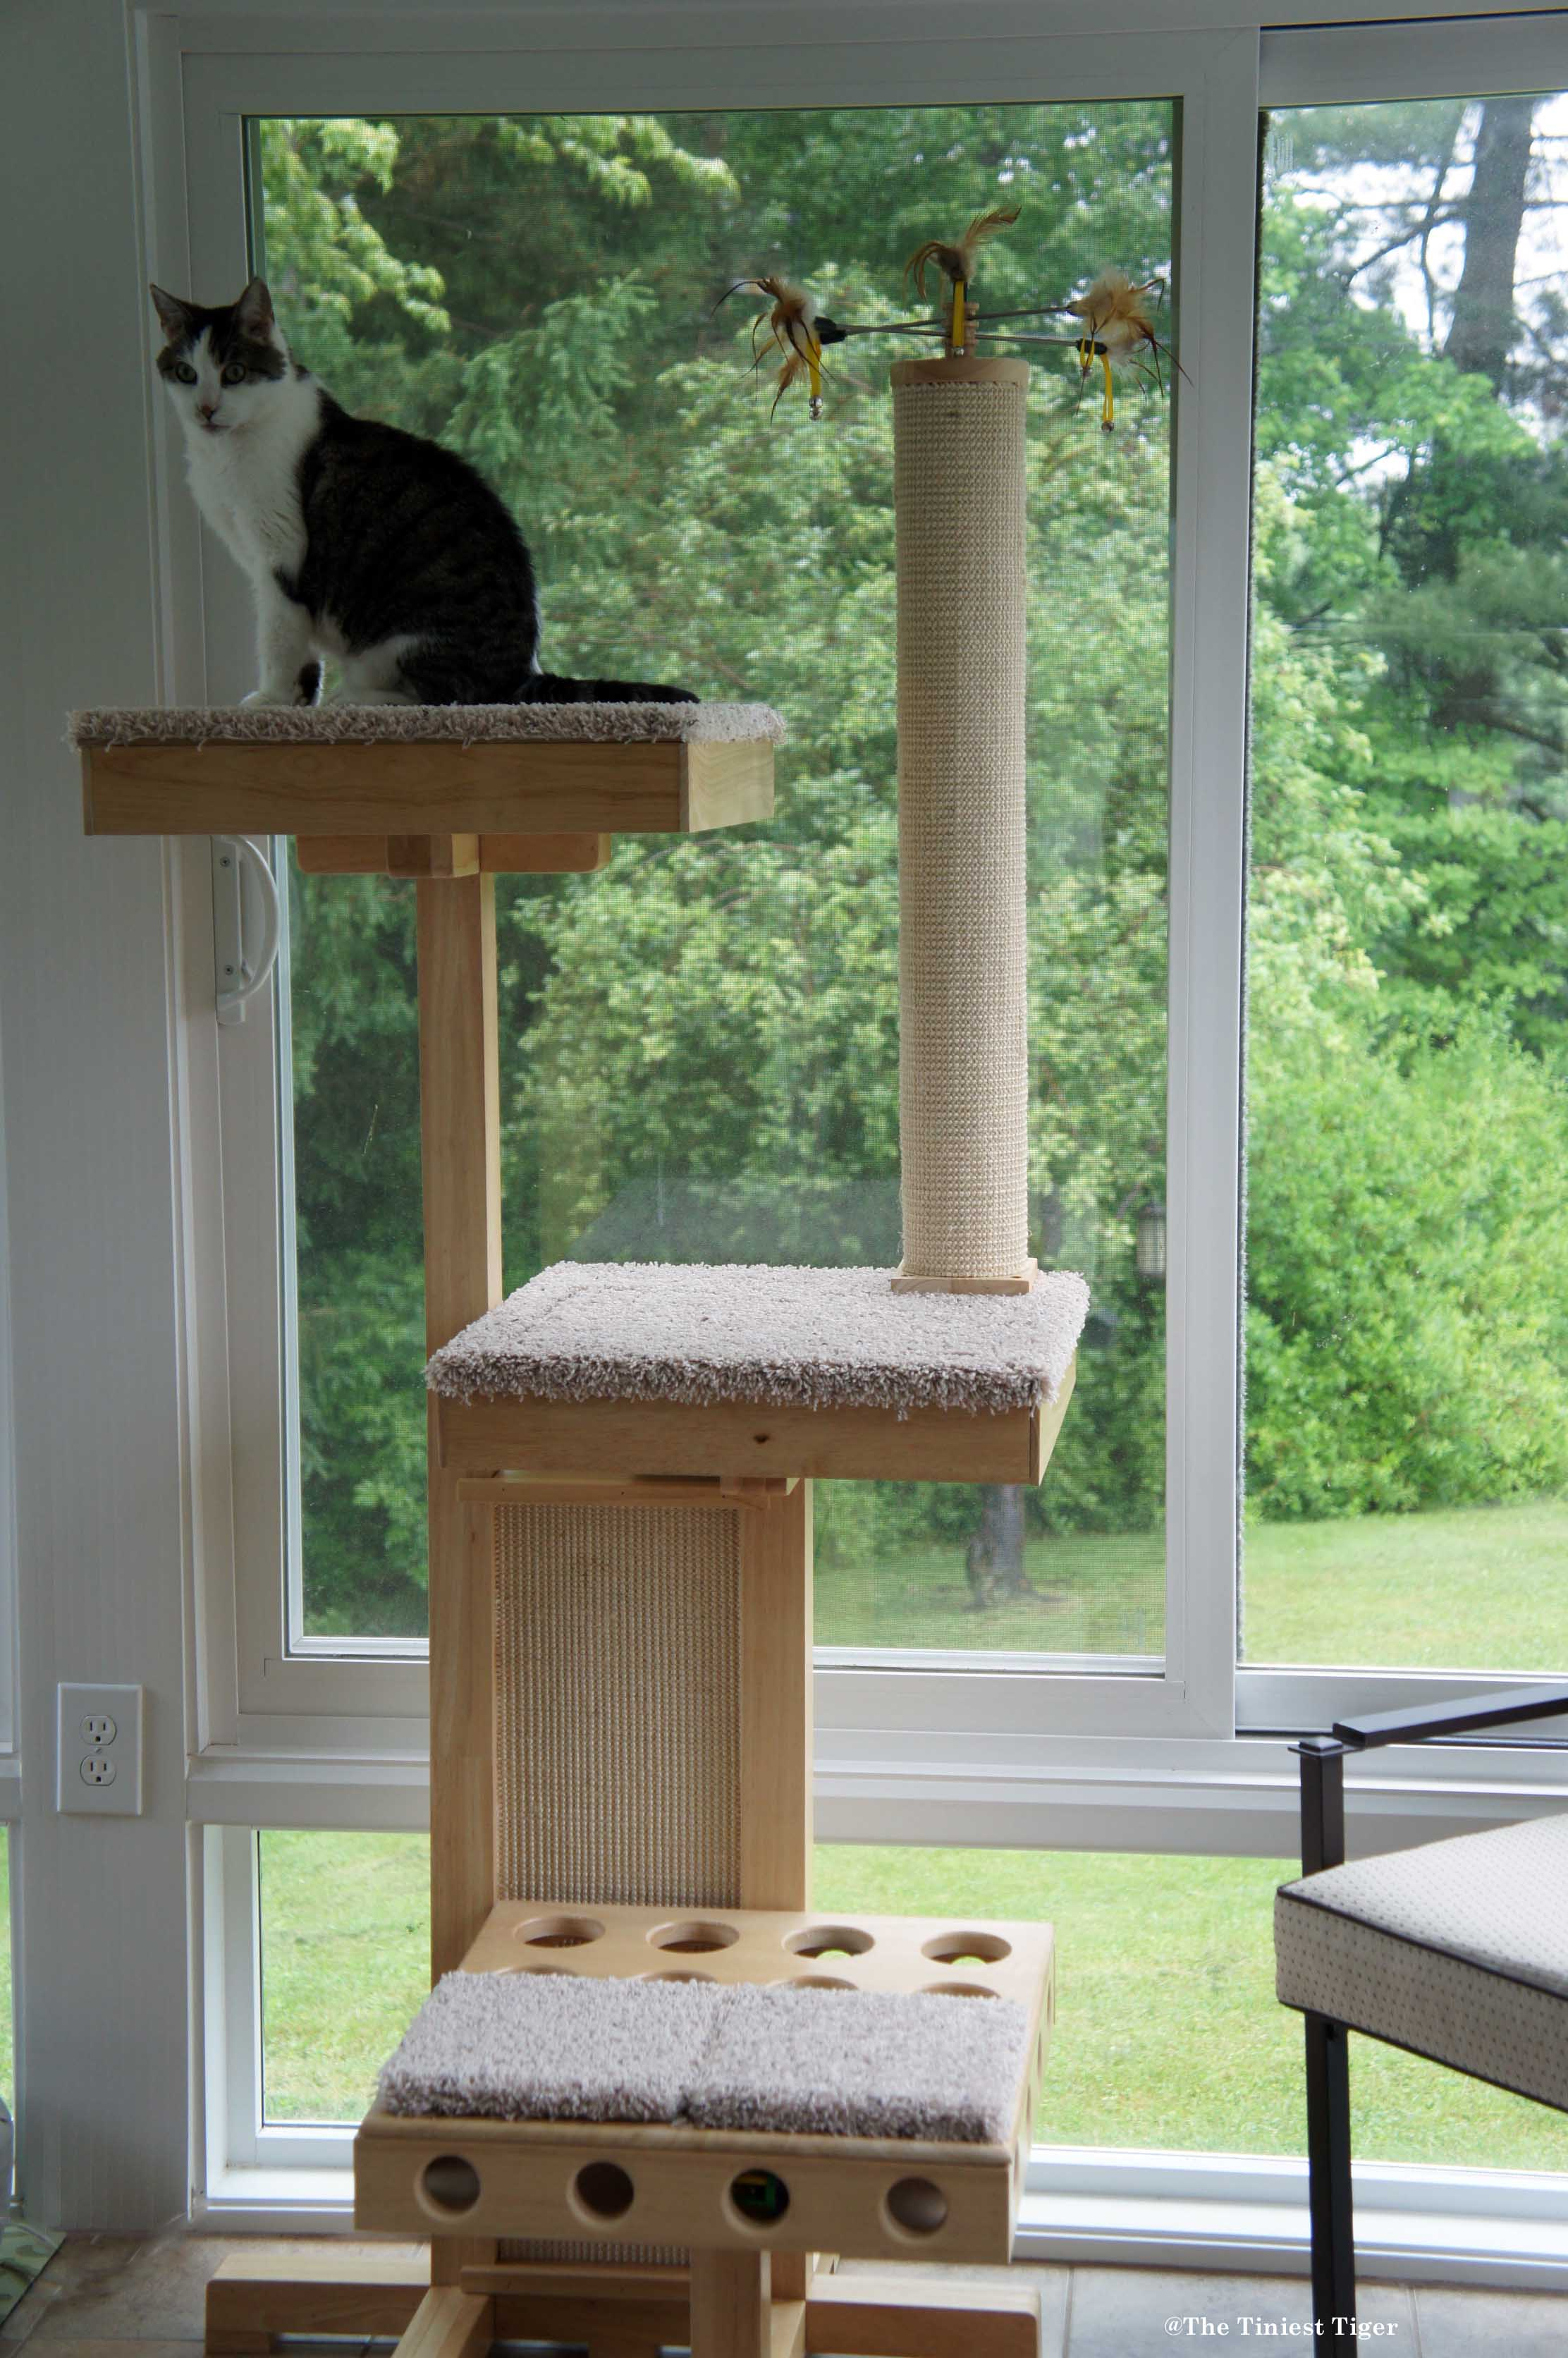 Keeping Your Home Cat and Human Friendly